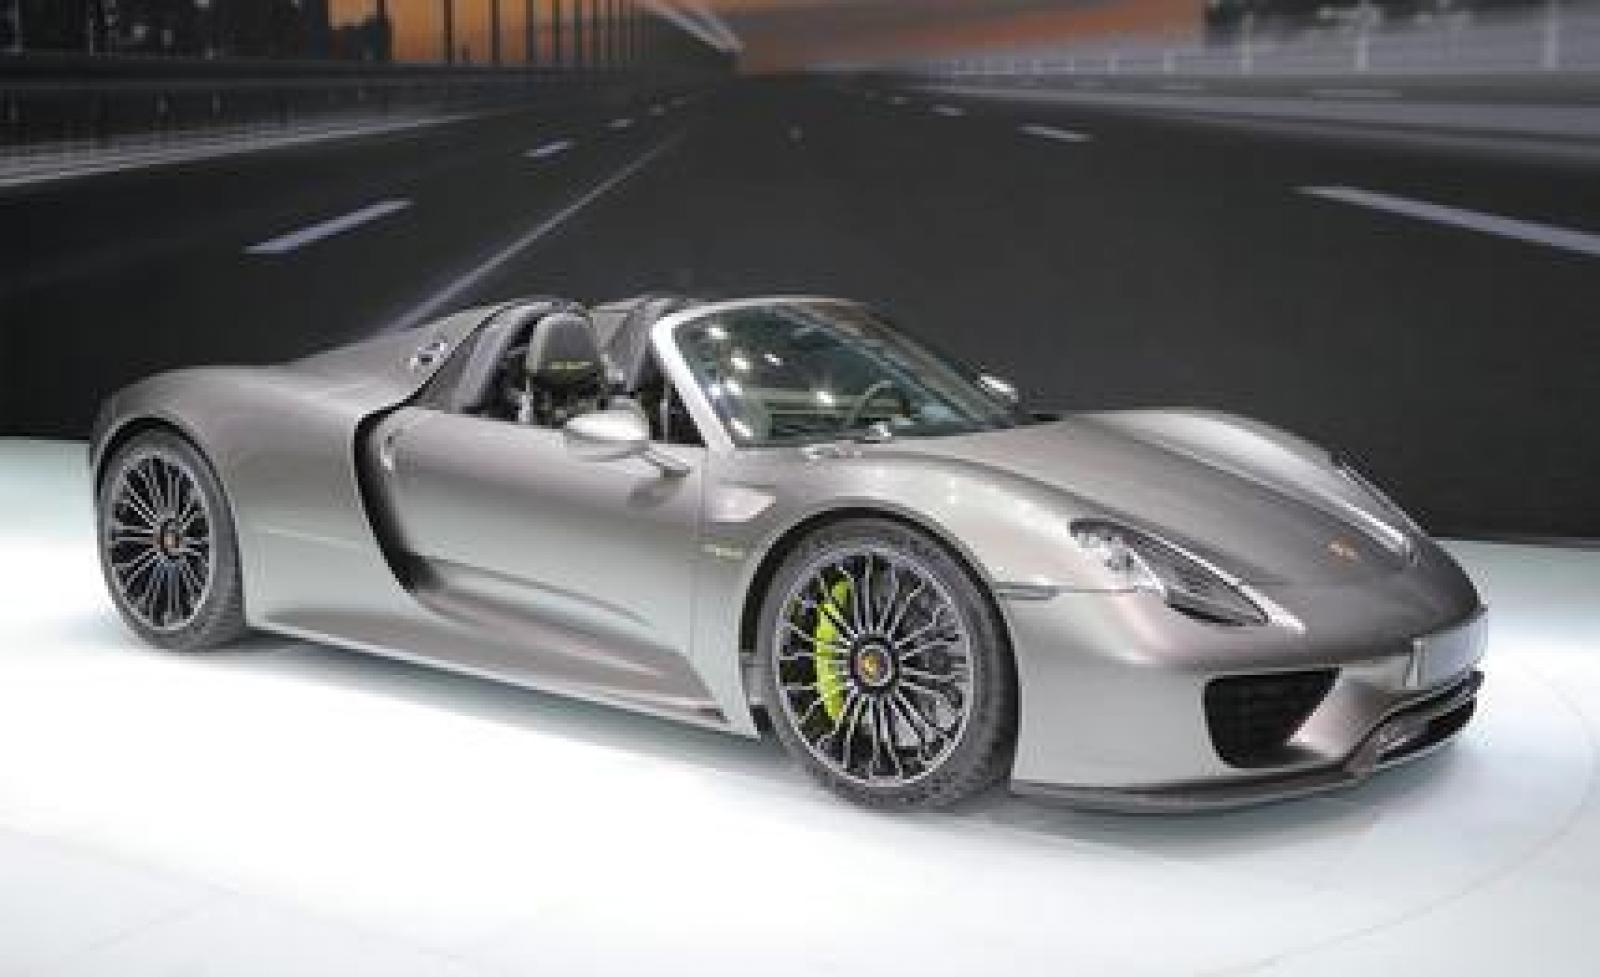 porsche 918 spyder facts 2015 porsche 918 spyder. Black Bedroom Furniture Sets. Home Design Ideas